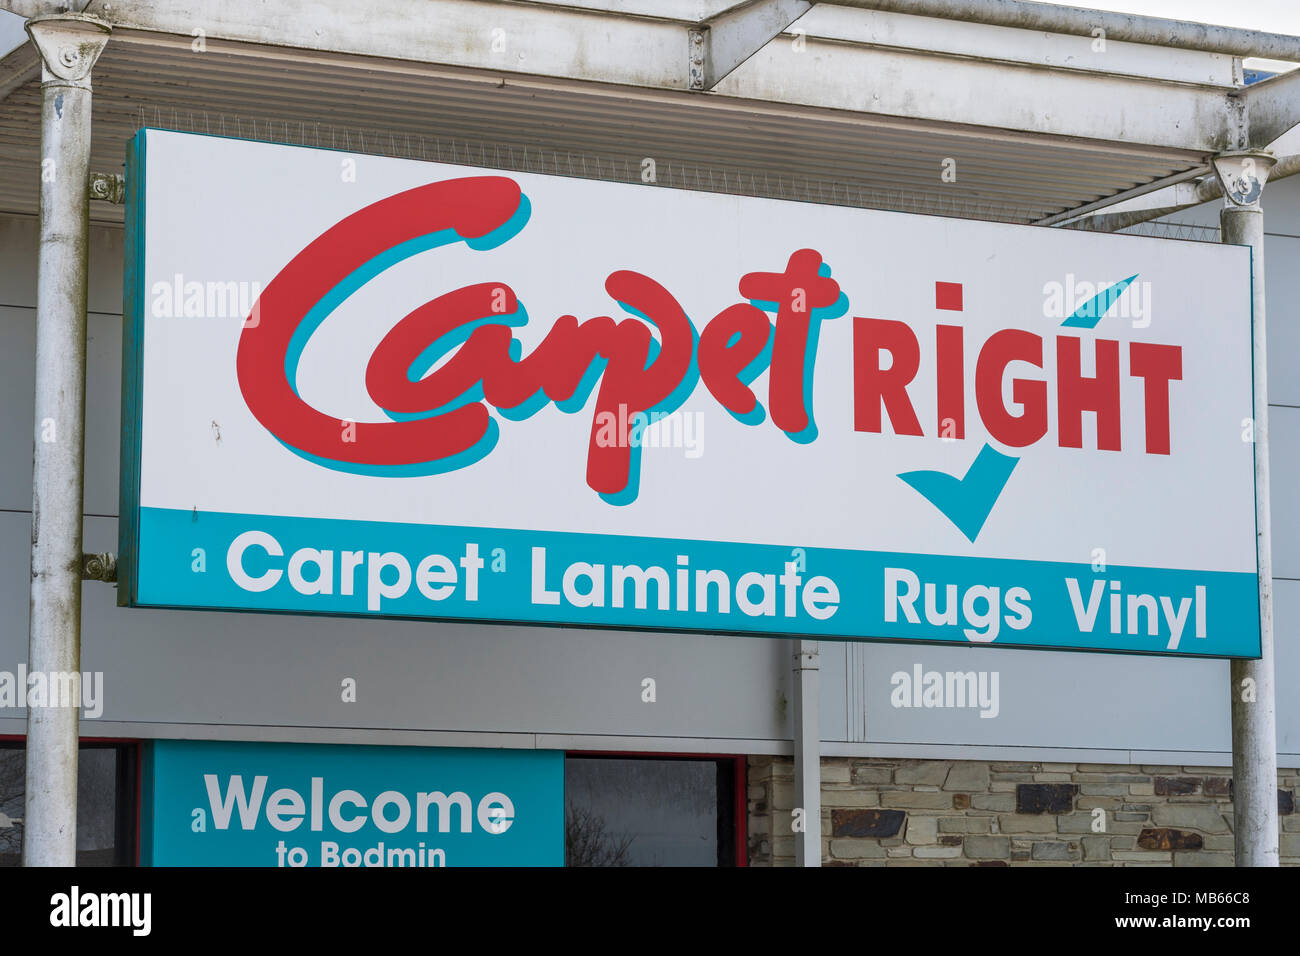 CarpetRight is possibly facing closure of stores in the UK - exterior of Bodmin Retail Park CarpetRight store before potential closures. - Stock Image